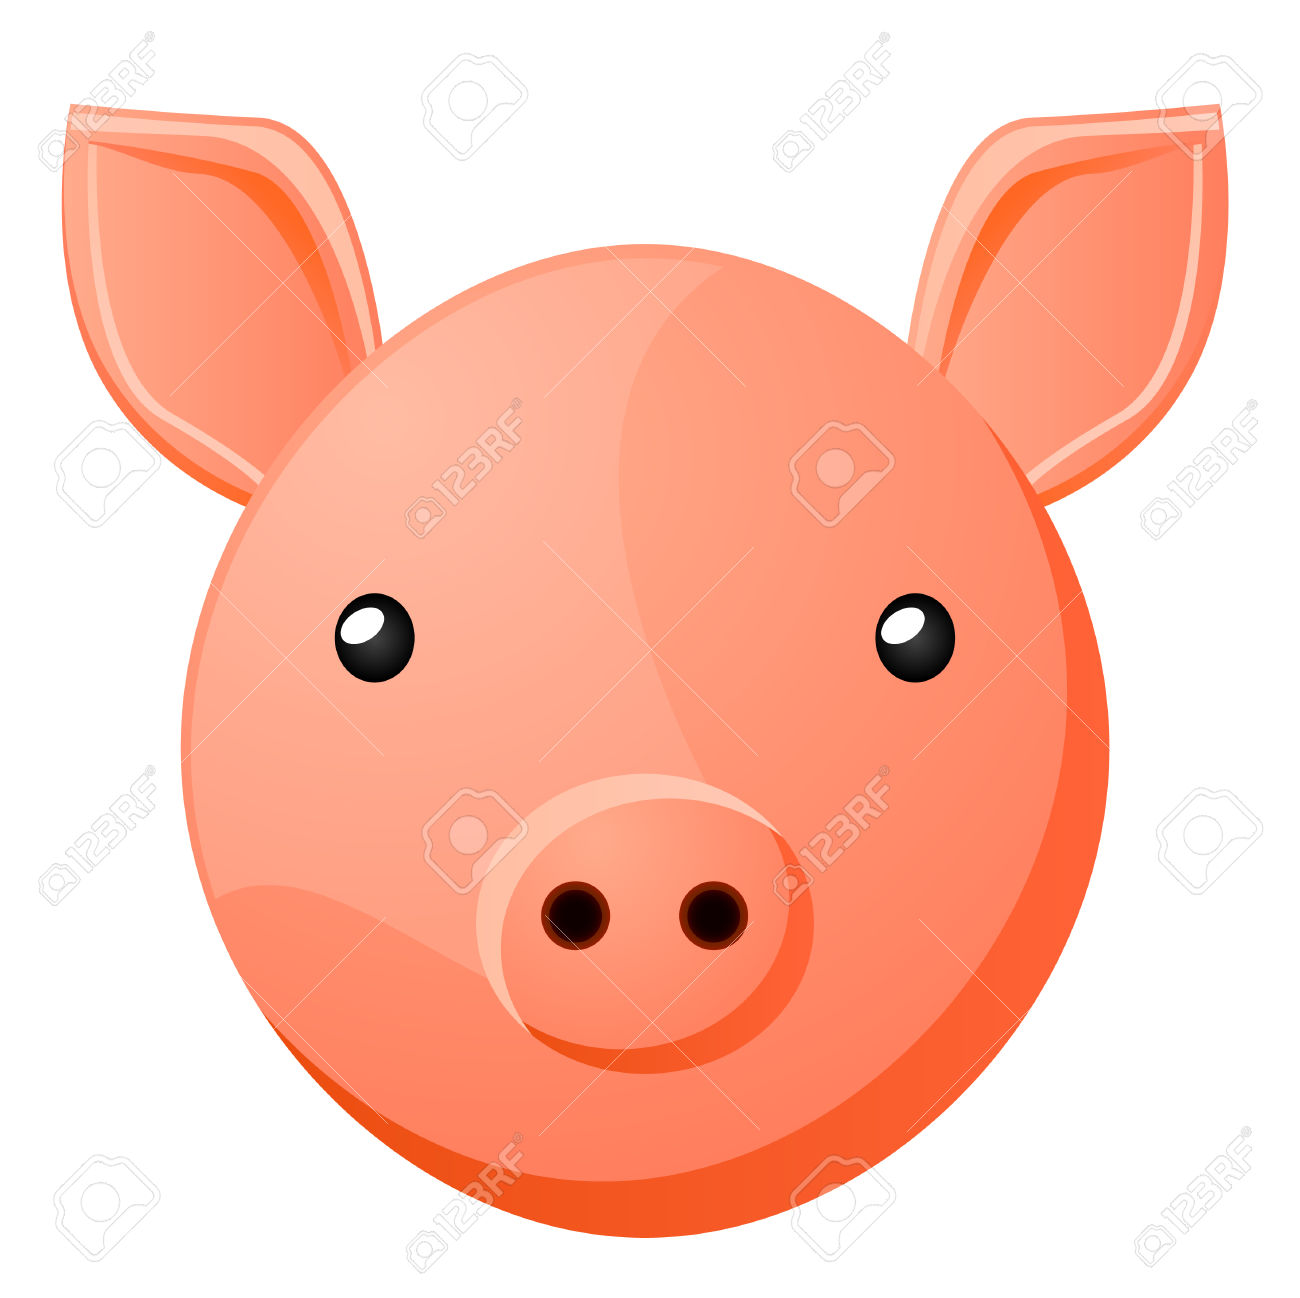 Pig Head Clip Art Icon Stock Photo, Picture And Royalty Free Image.